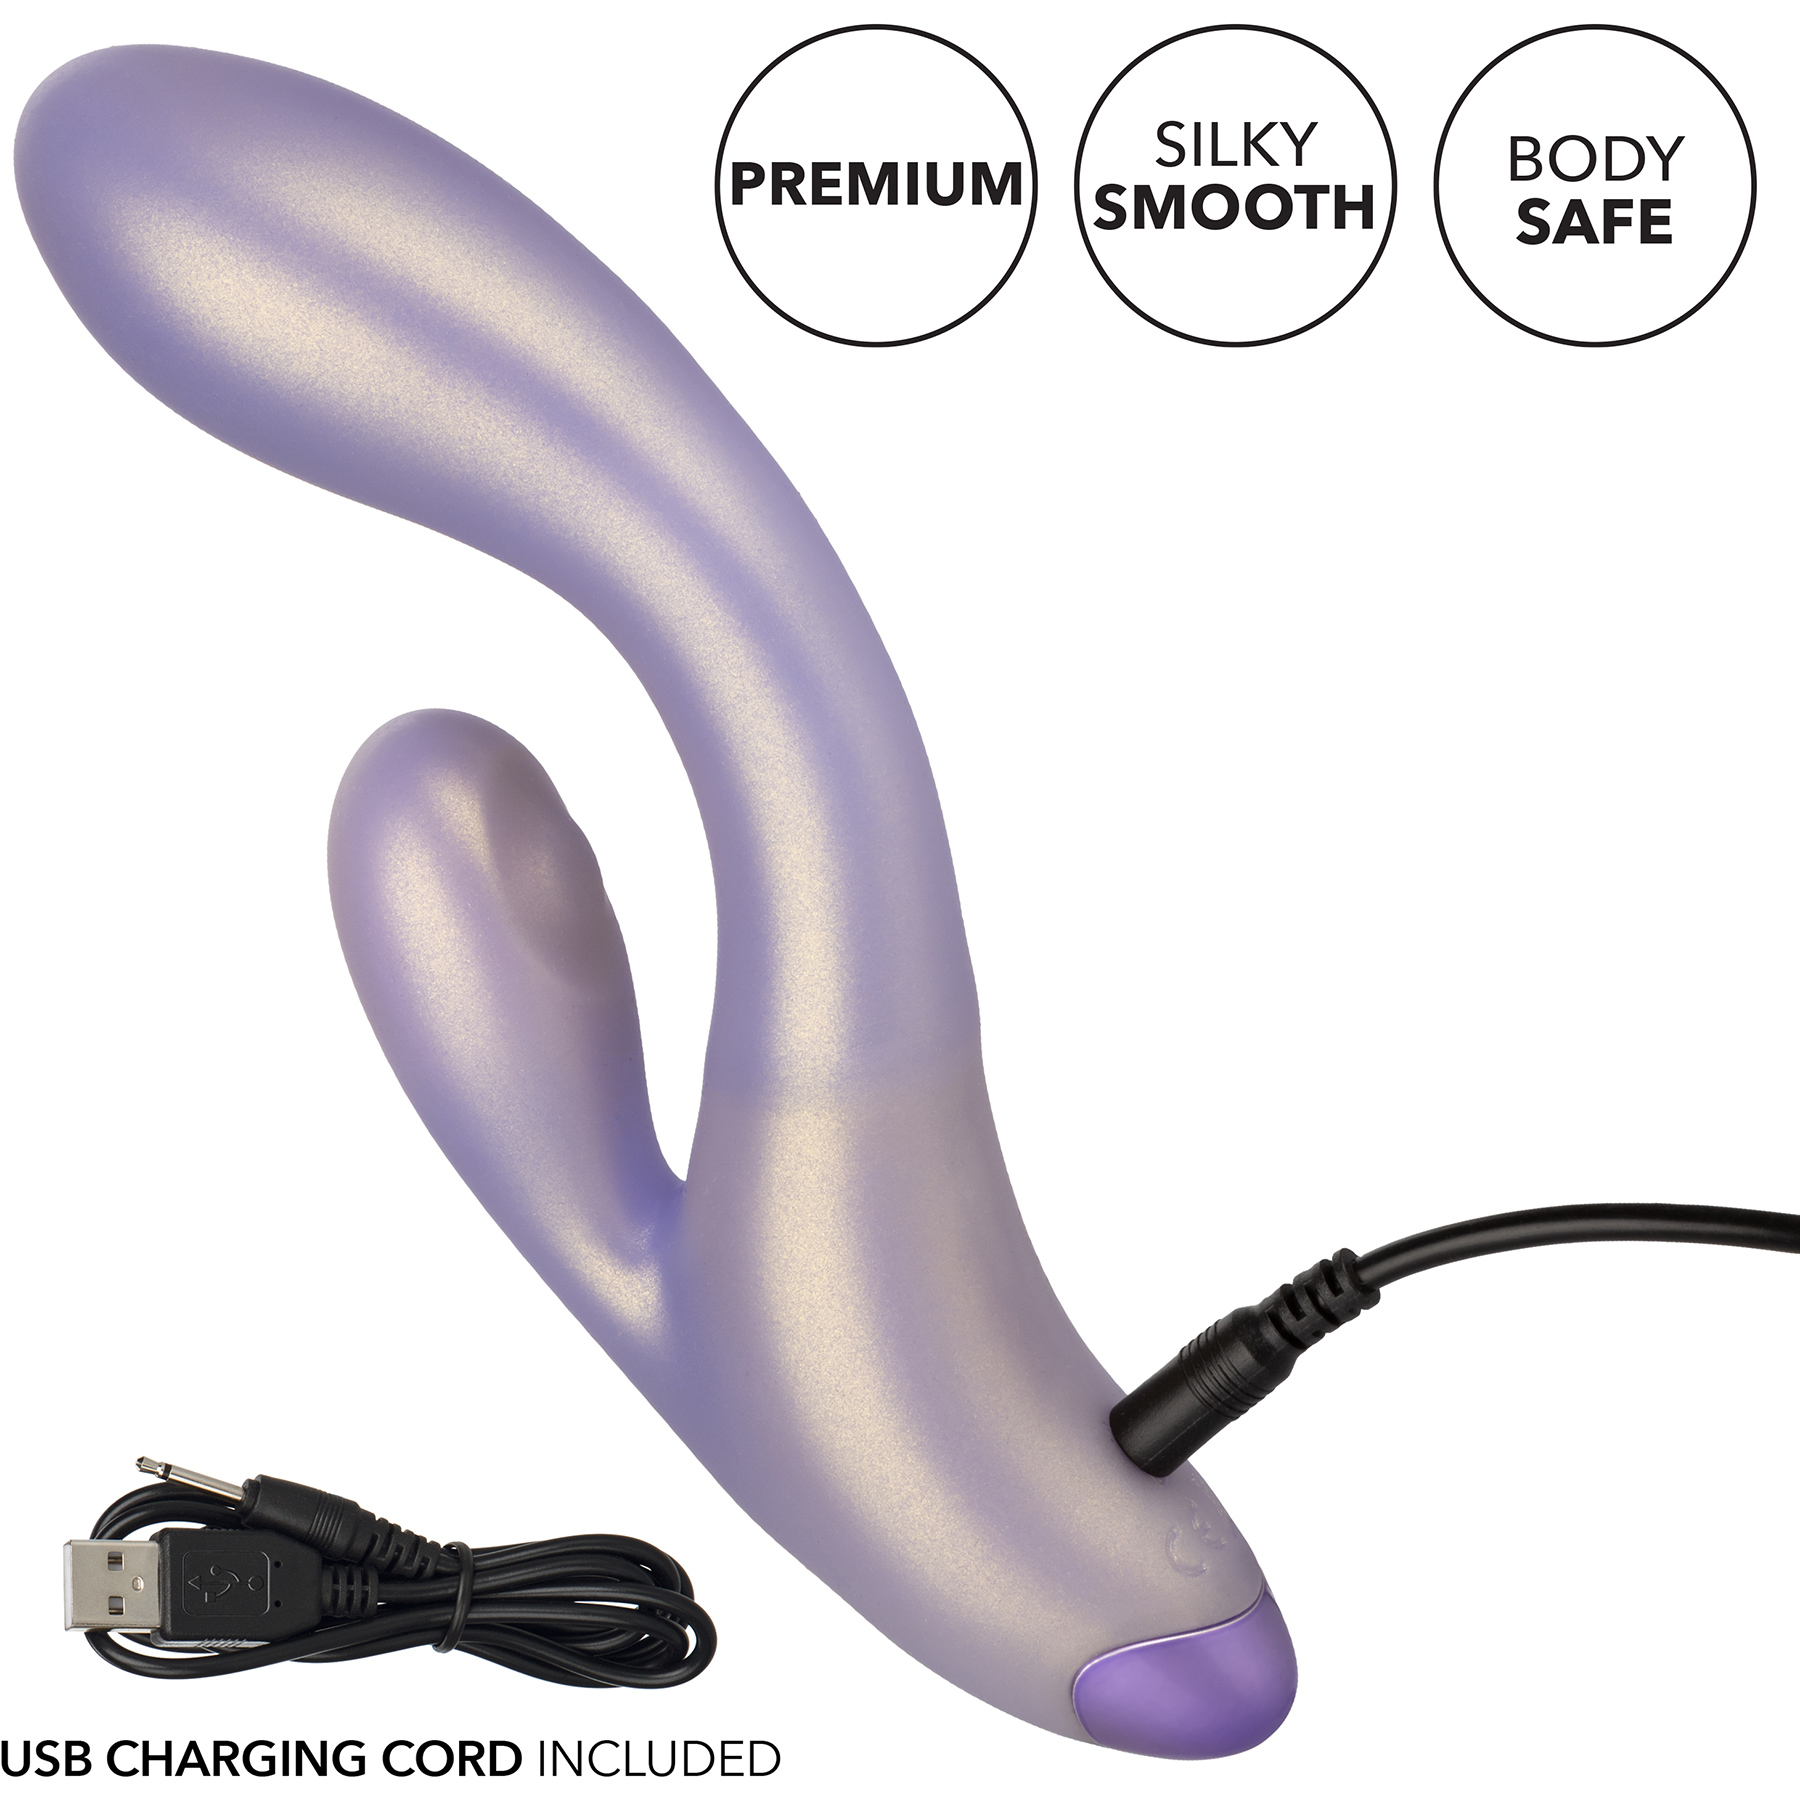 G-Love G-Thumper Silicone Rechargeable Waterproof Dual Stimulation Vibrator By CalExotics - Charging